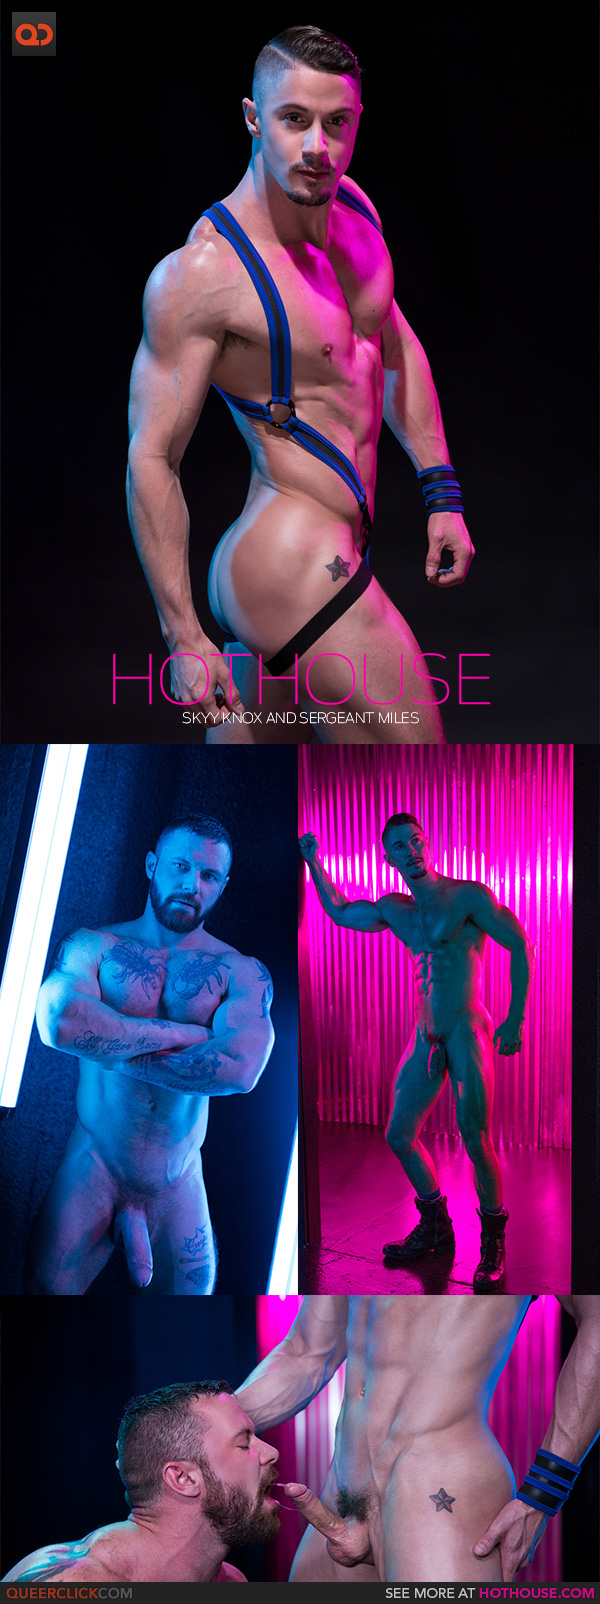 Hot House: Skyy Knox and Sergeant Miles